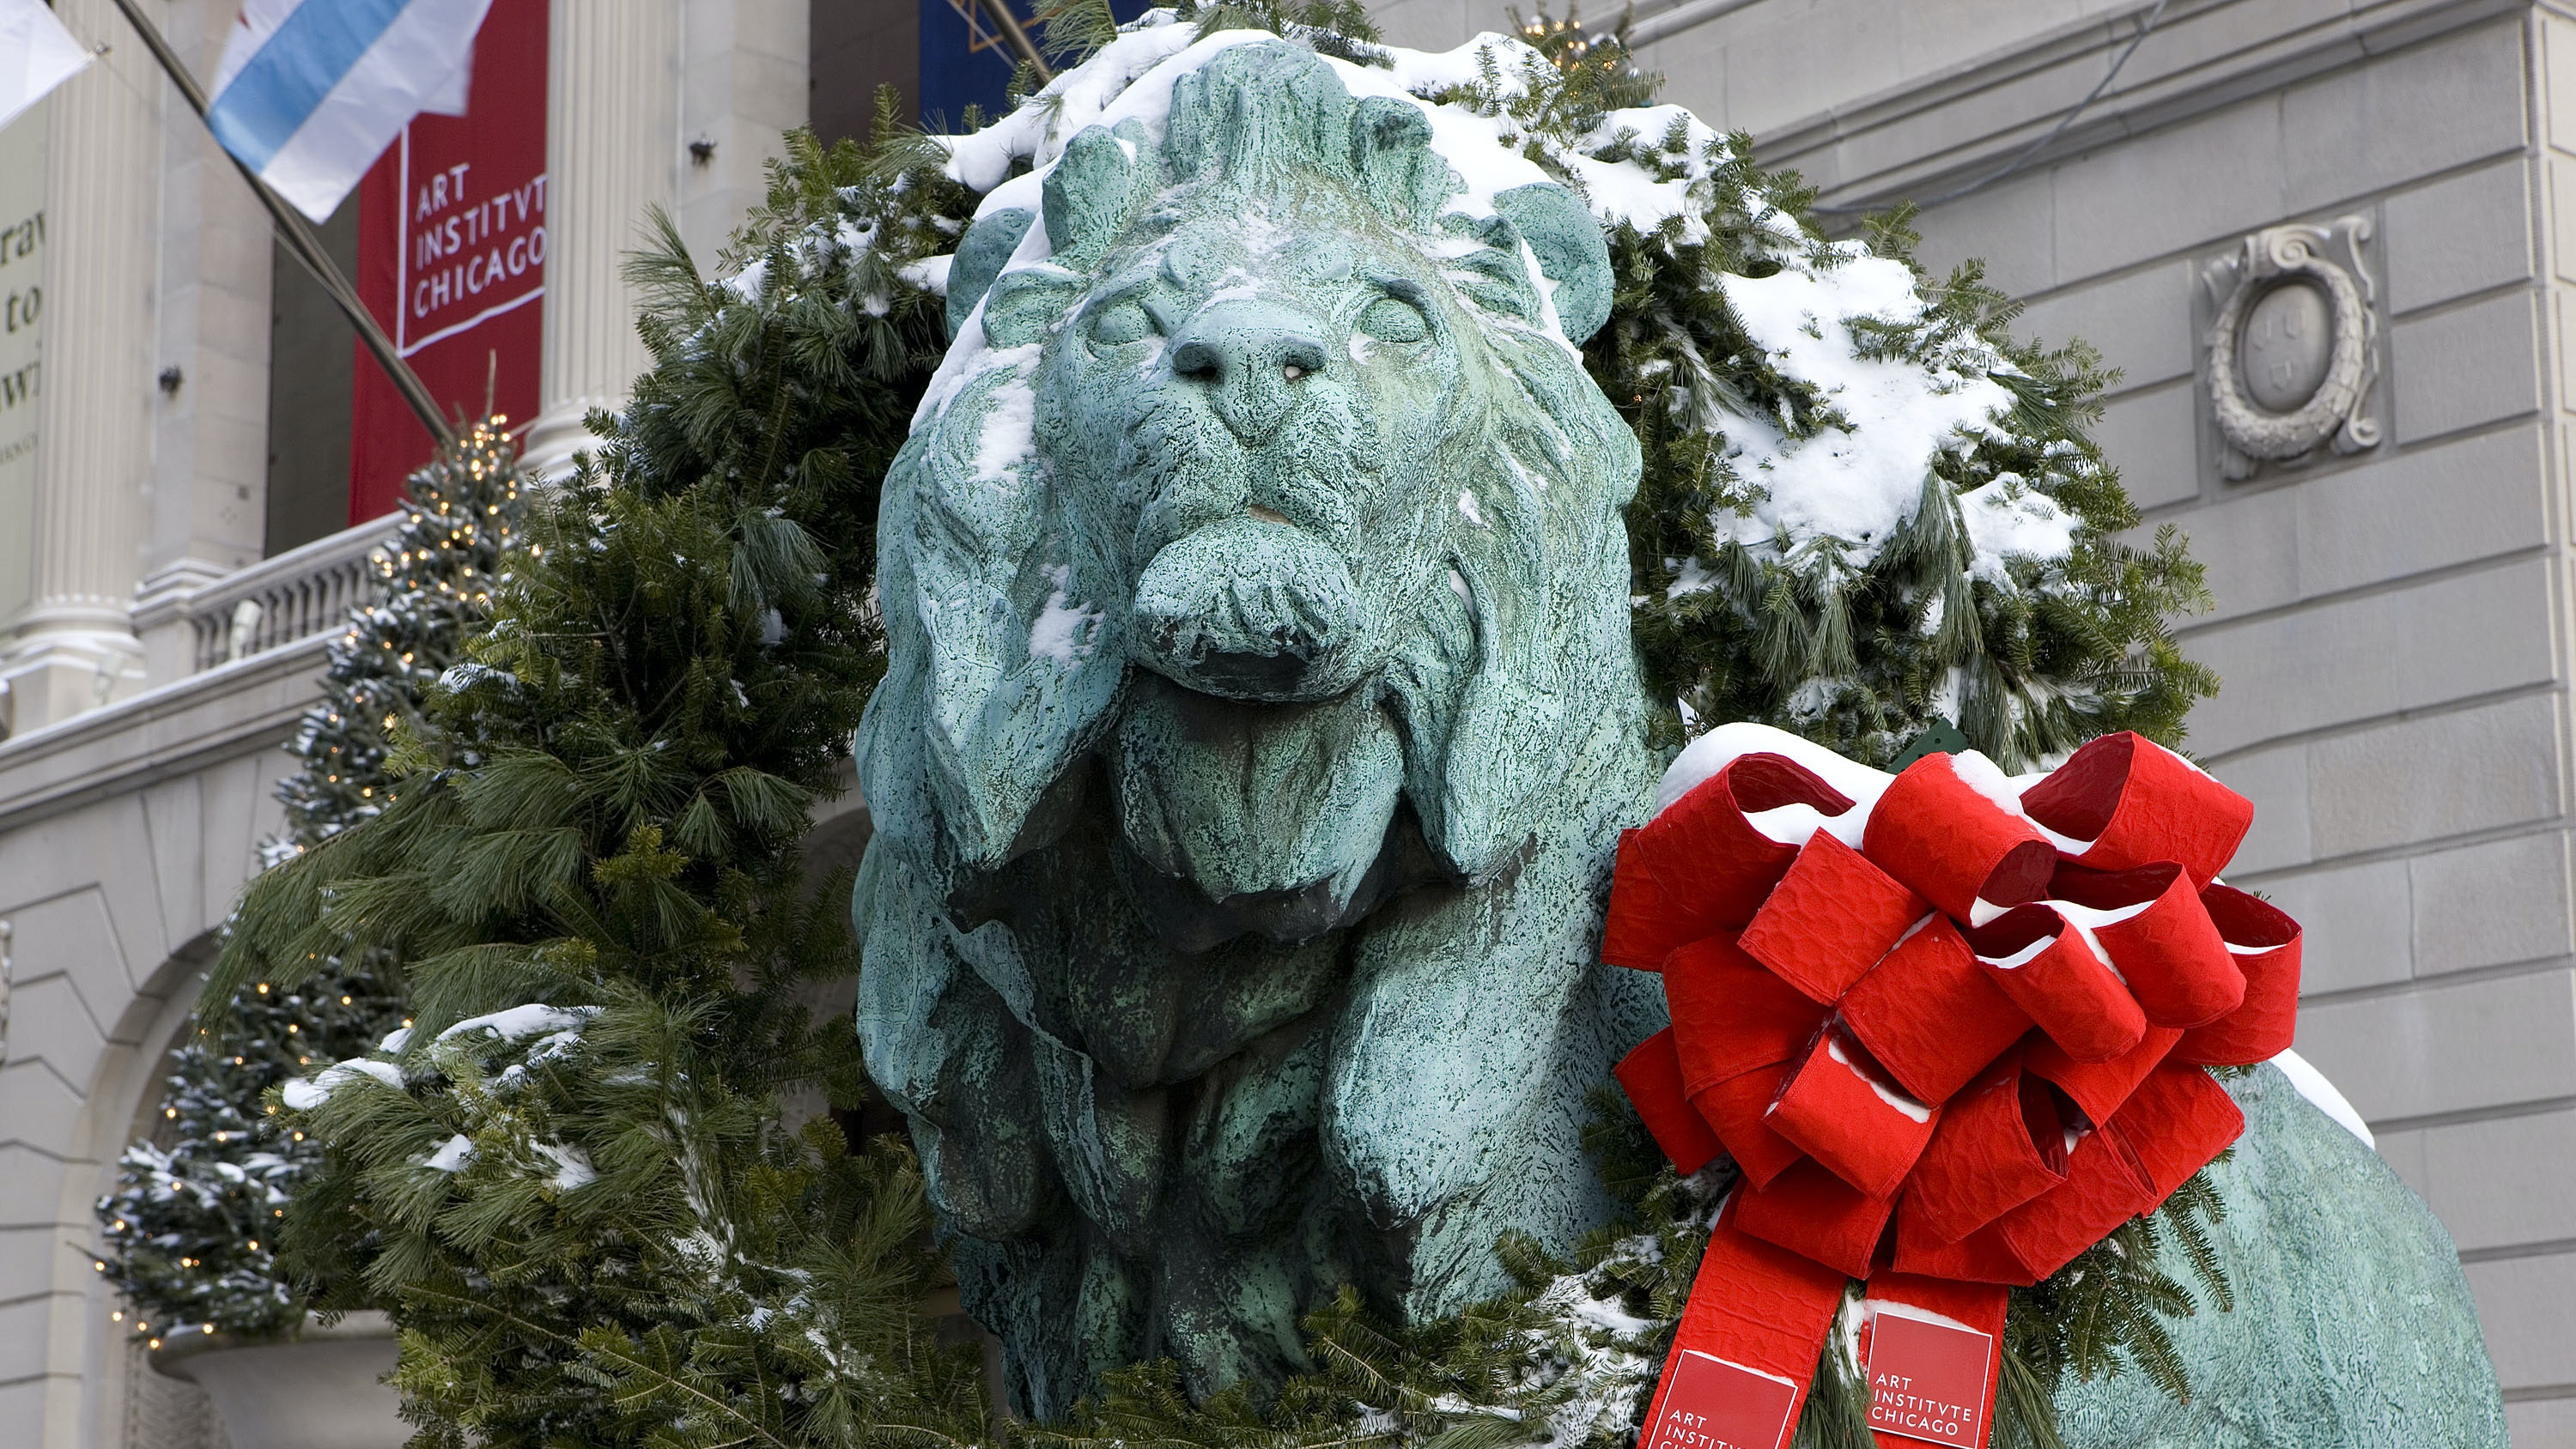 A bronze lion with snow-covered wreath